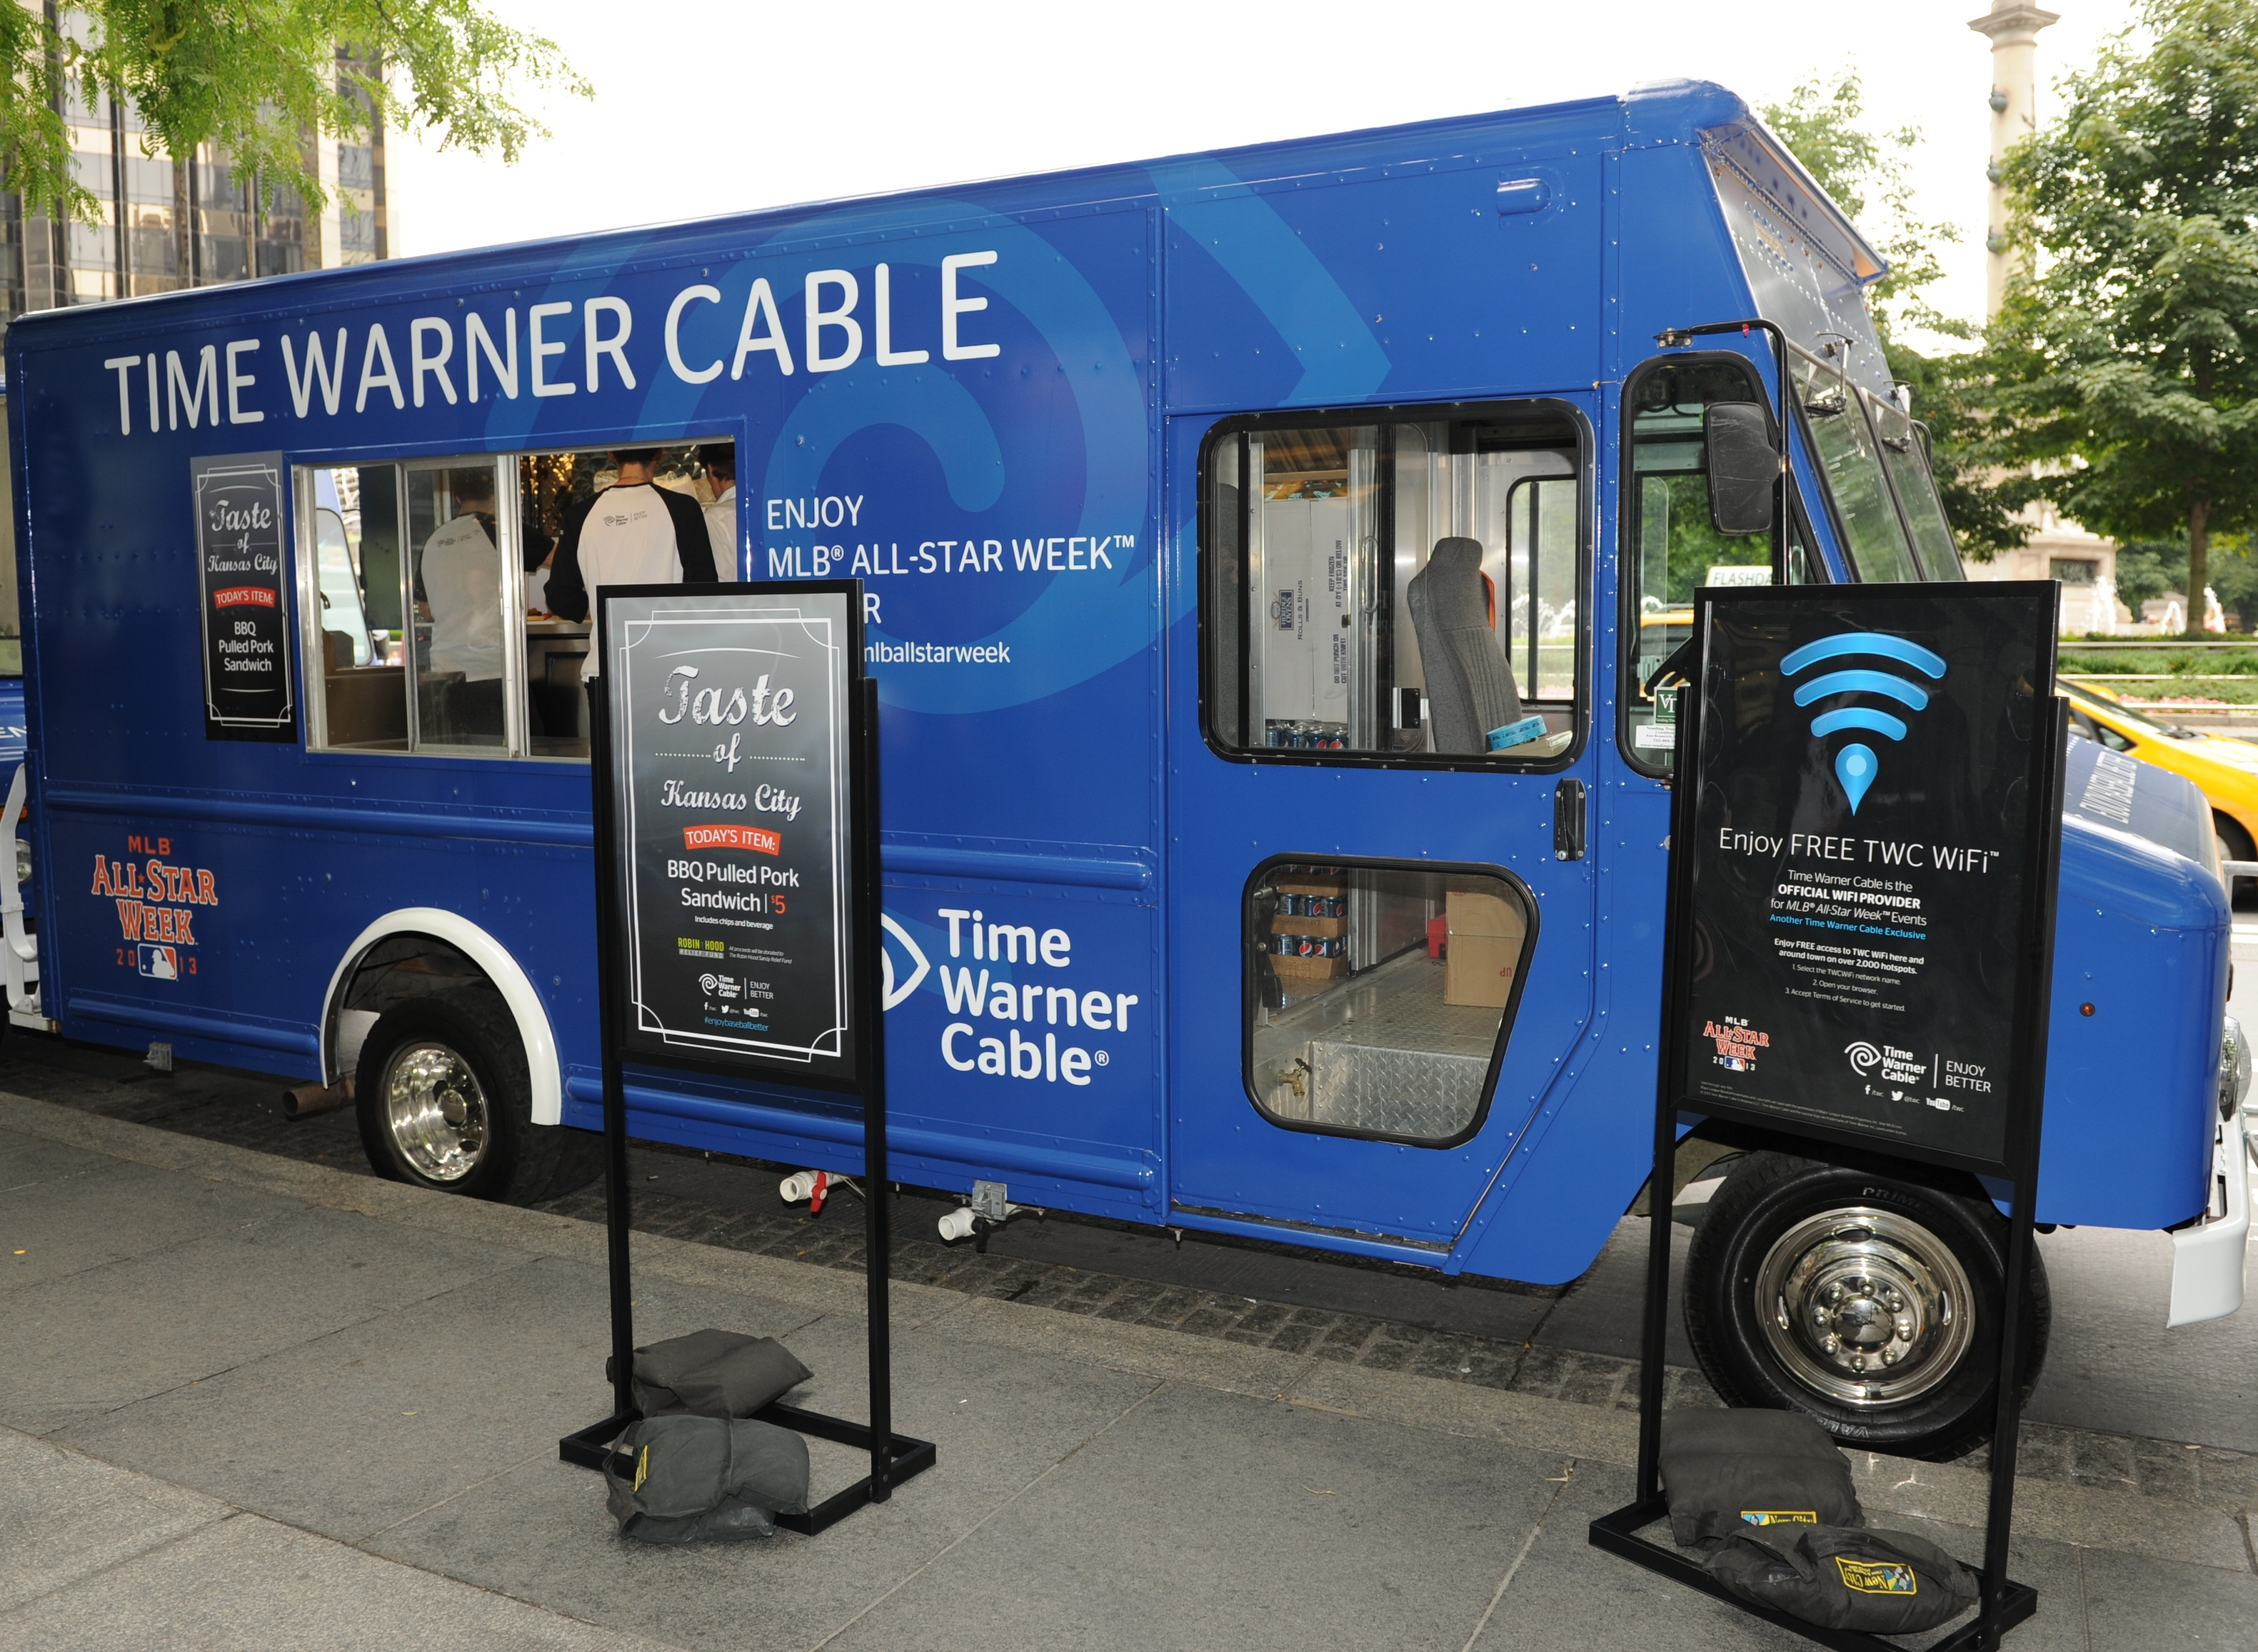 Time Warner Cable Celebrates Launch Of TWC WiFiTM In Manhattan By Offering Free Access To NYC WiFi Network During MLB All Star Week From July 12 16